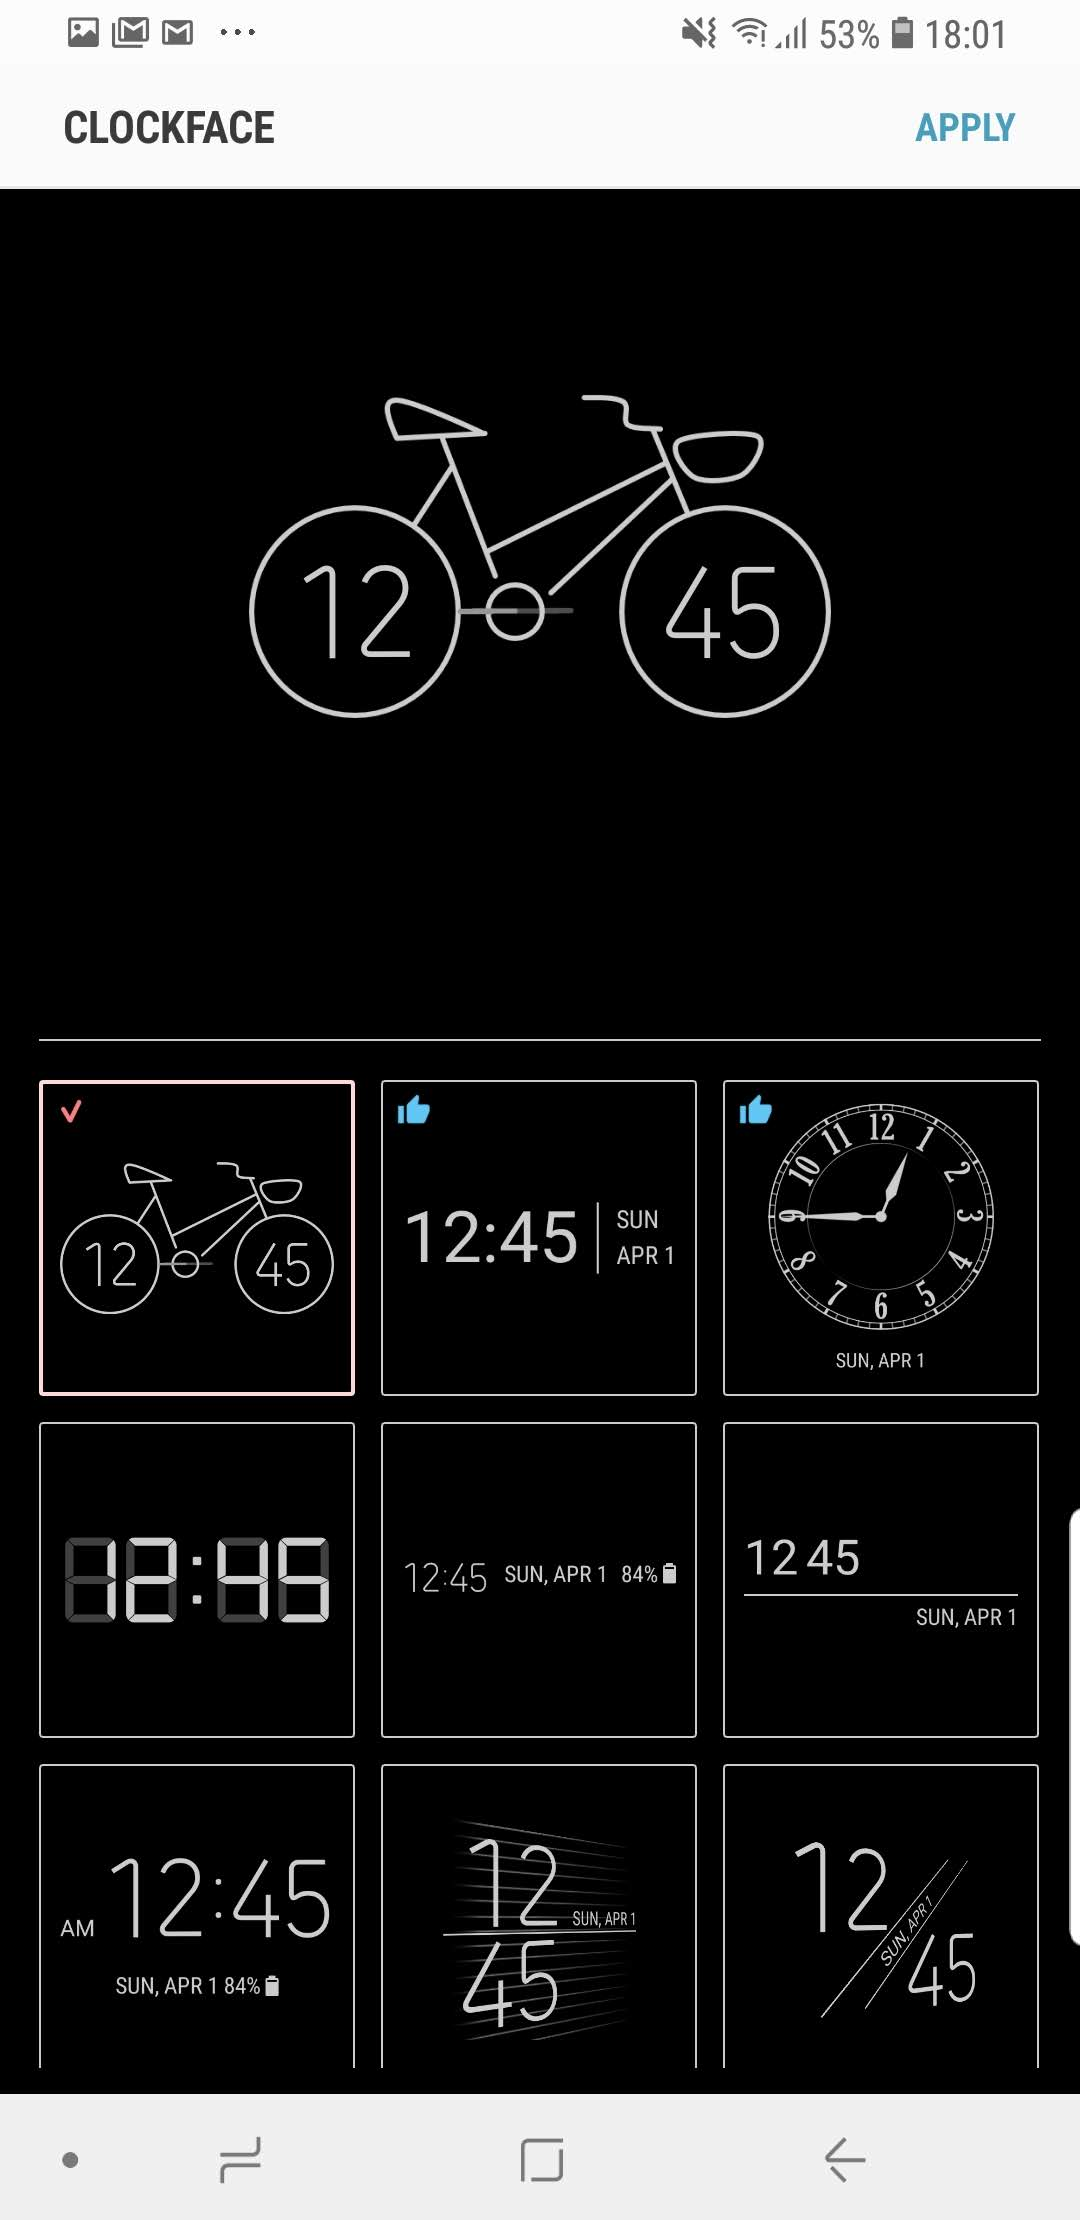 Get new Always On Display clock faces with this Samsung app